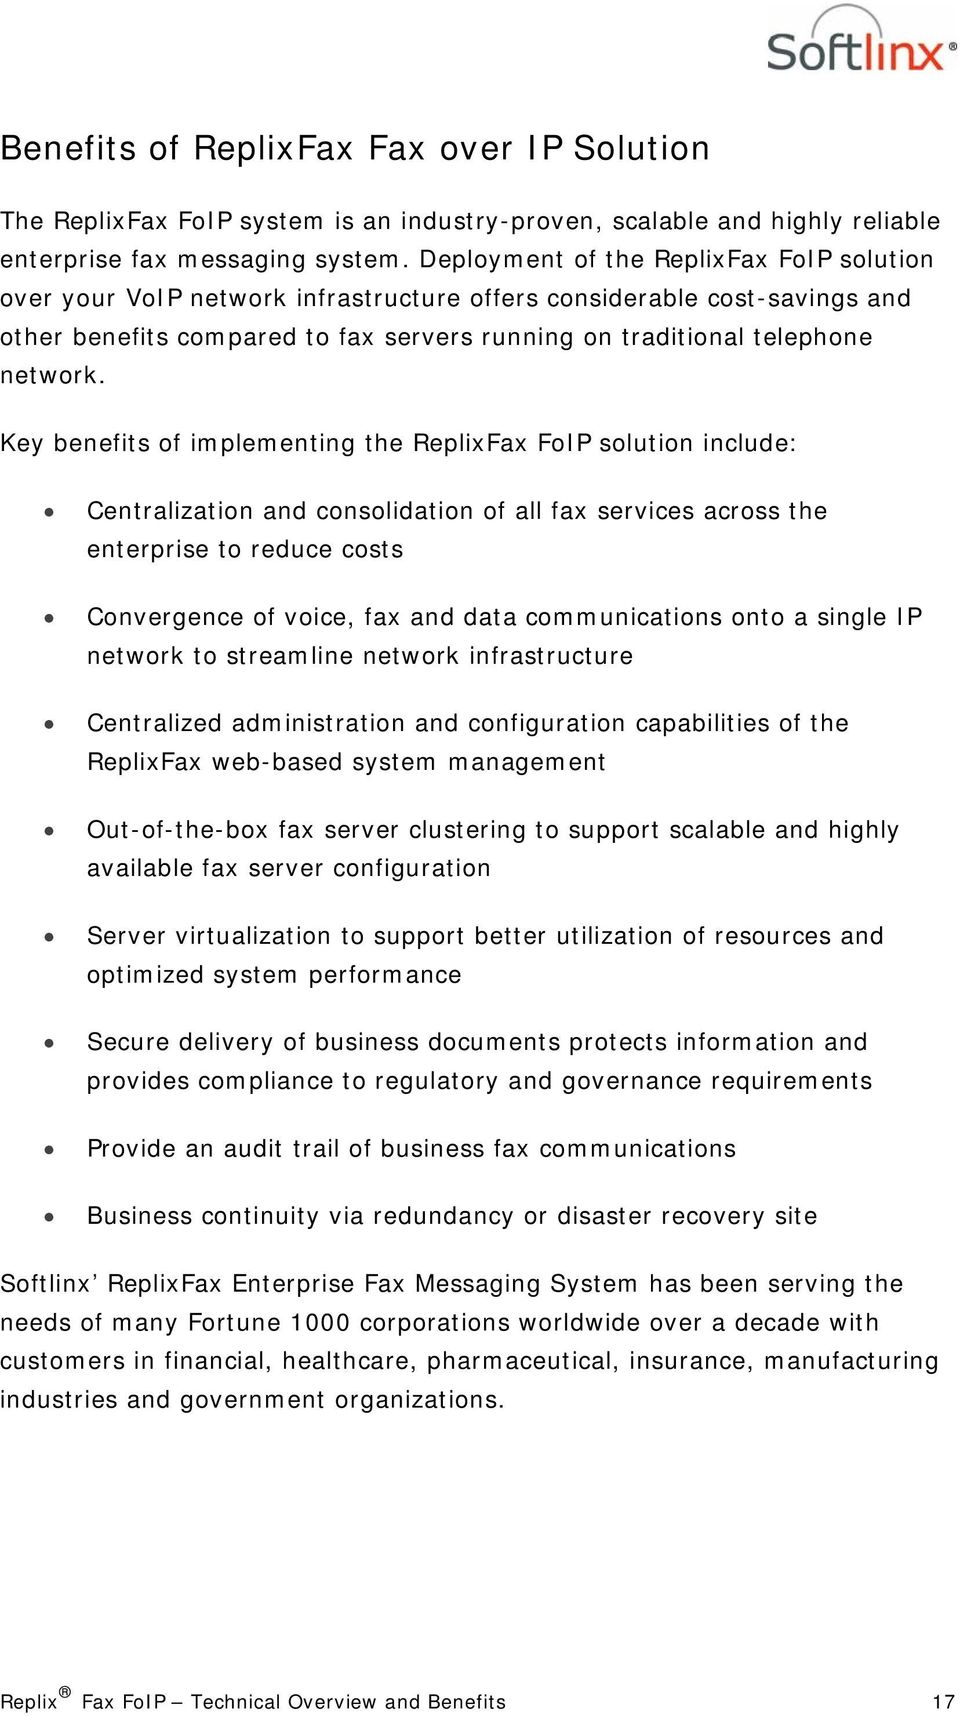 Key benefits of implementing the ReplixFax FoIP solution include: Centralization and consolidation of all fax services across the enterprise to reduce costs Convergence of voice, fax and data